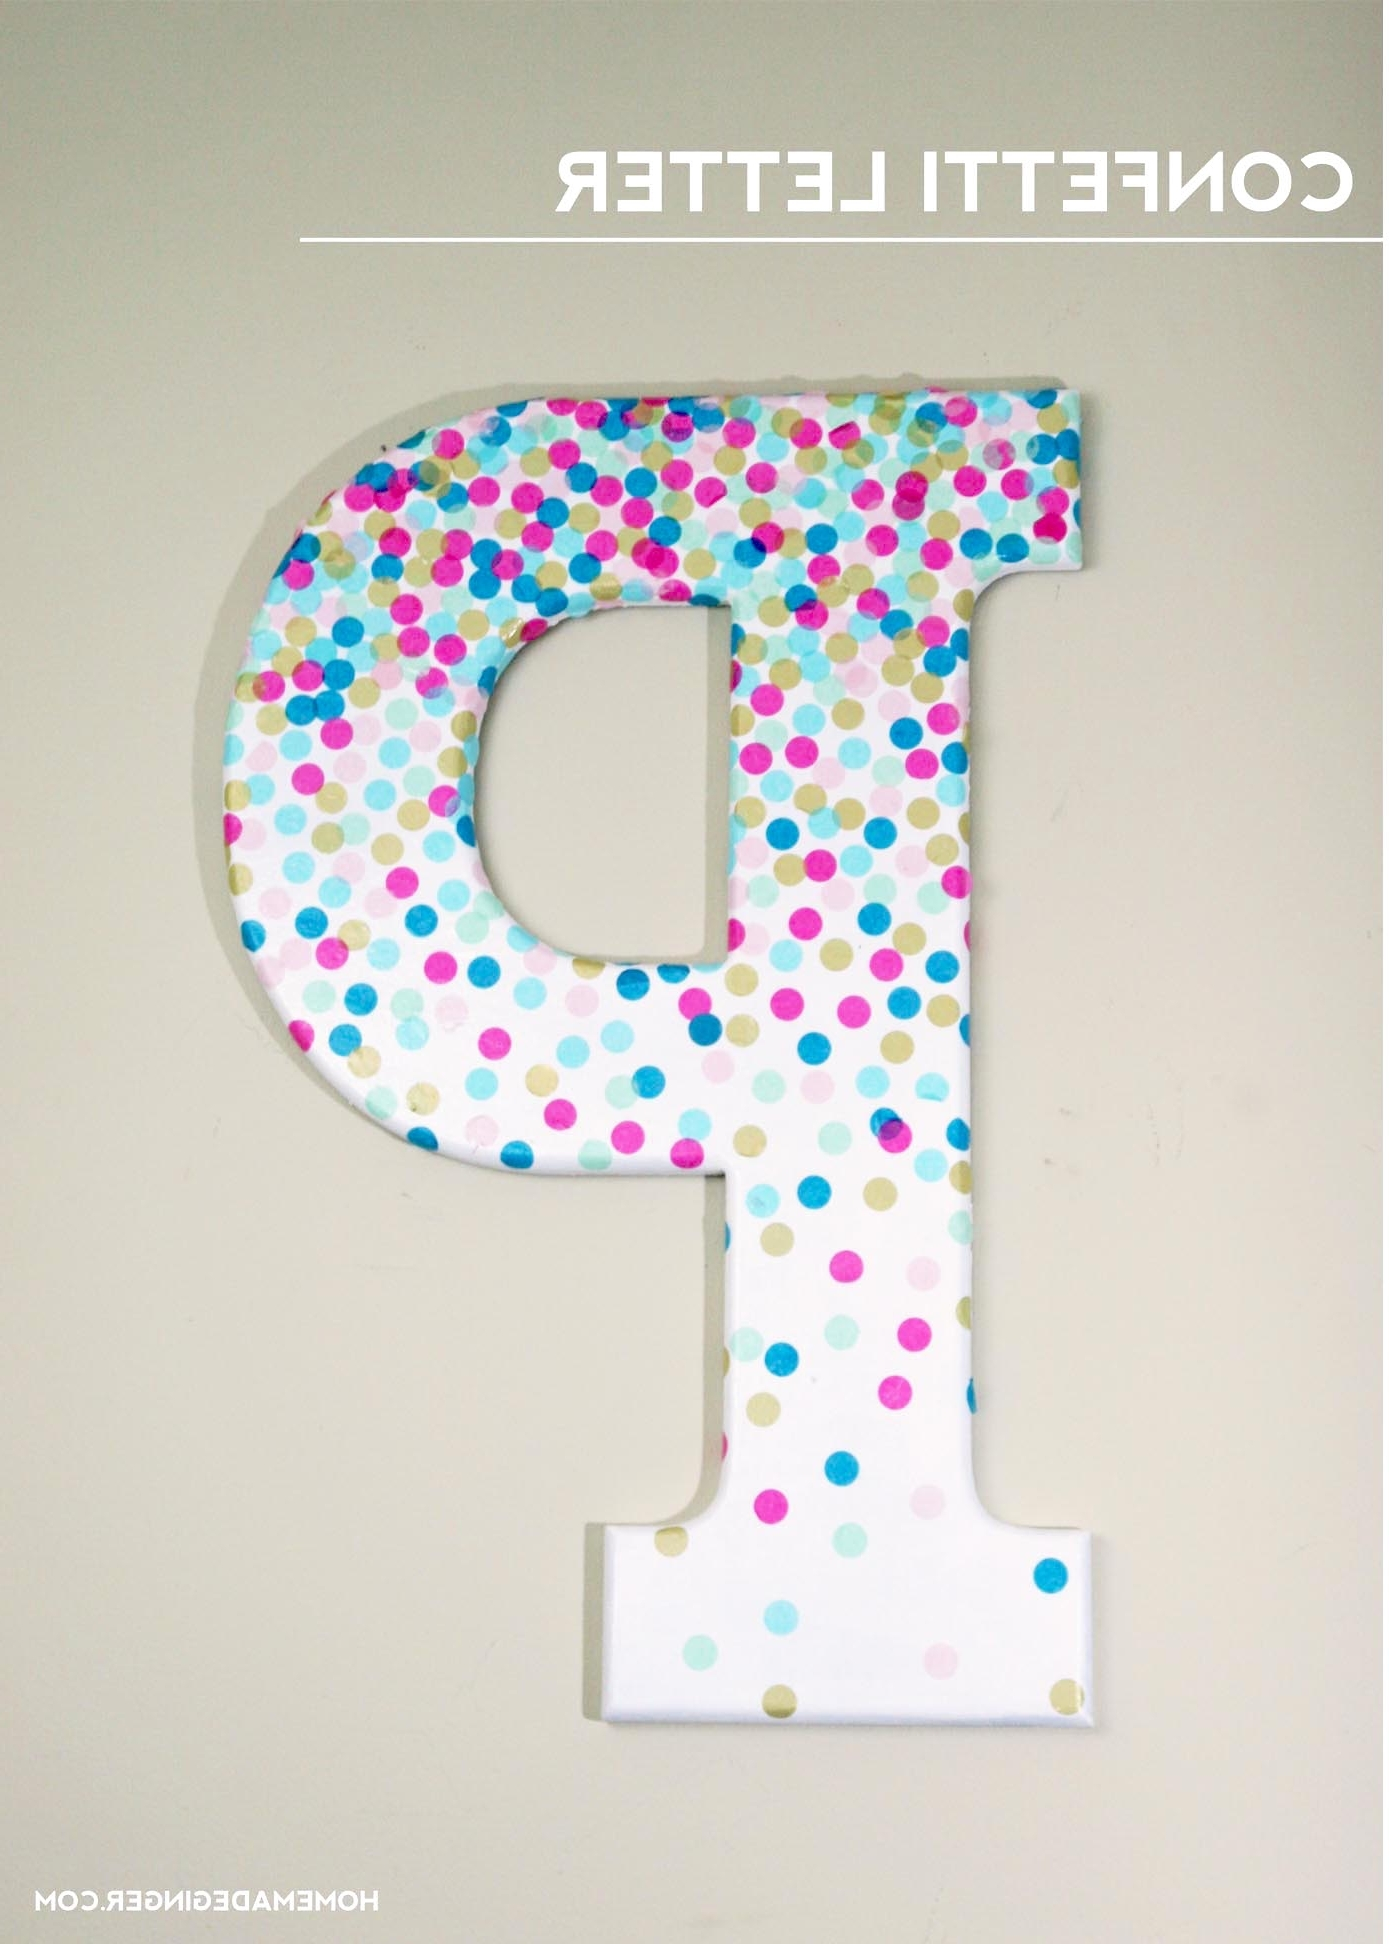 Well Known Diy Wall Art: Confetti Letter – Homemade Ginger Inside Letter Wall Art (View 18 of 20)